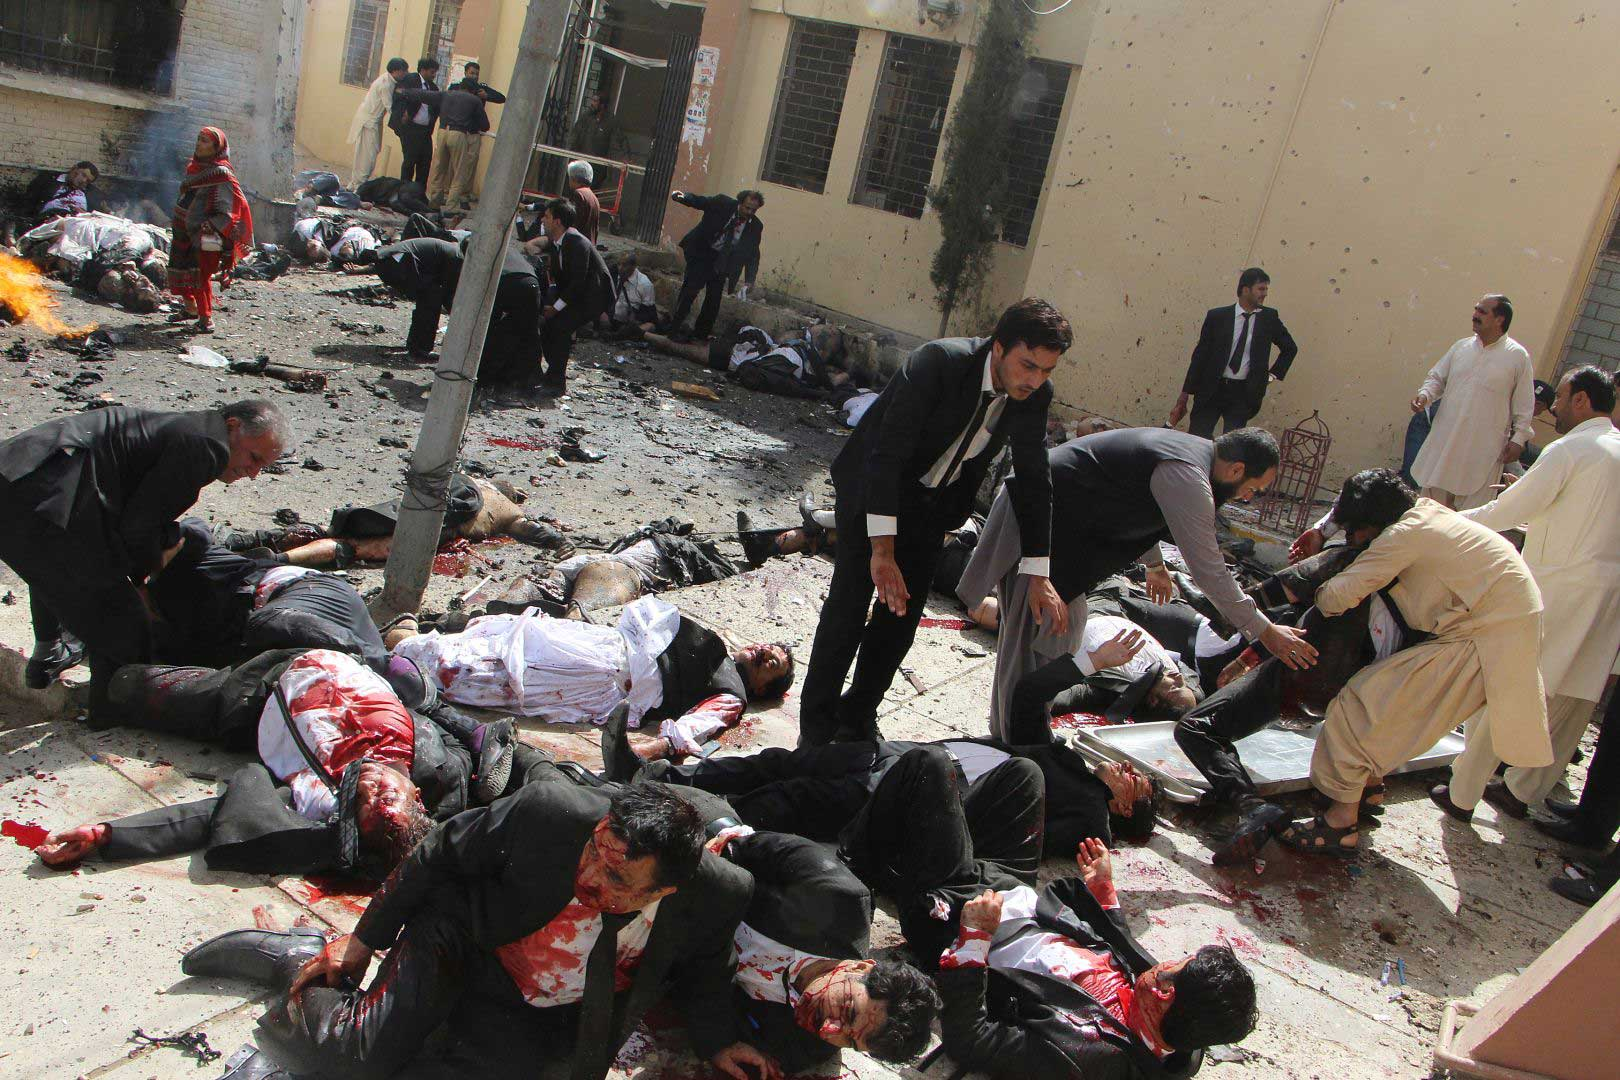 Lawyers help their injured colleagues after a bomb explosion in Quetta, Pakistan, on Aug. 8, 2016. Seventy people were killed when a bomb exploded outside a civil hospital where a crowd of lawyers and journalists had gathered to mourn Bilal Anwar Kasi, a senior lawyer who had been assassinated hours earlier.